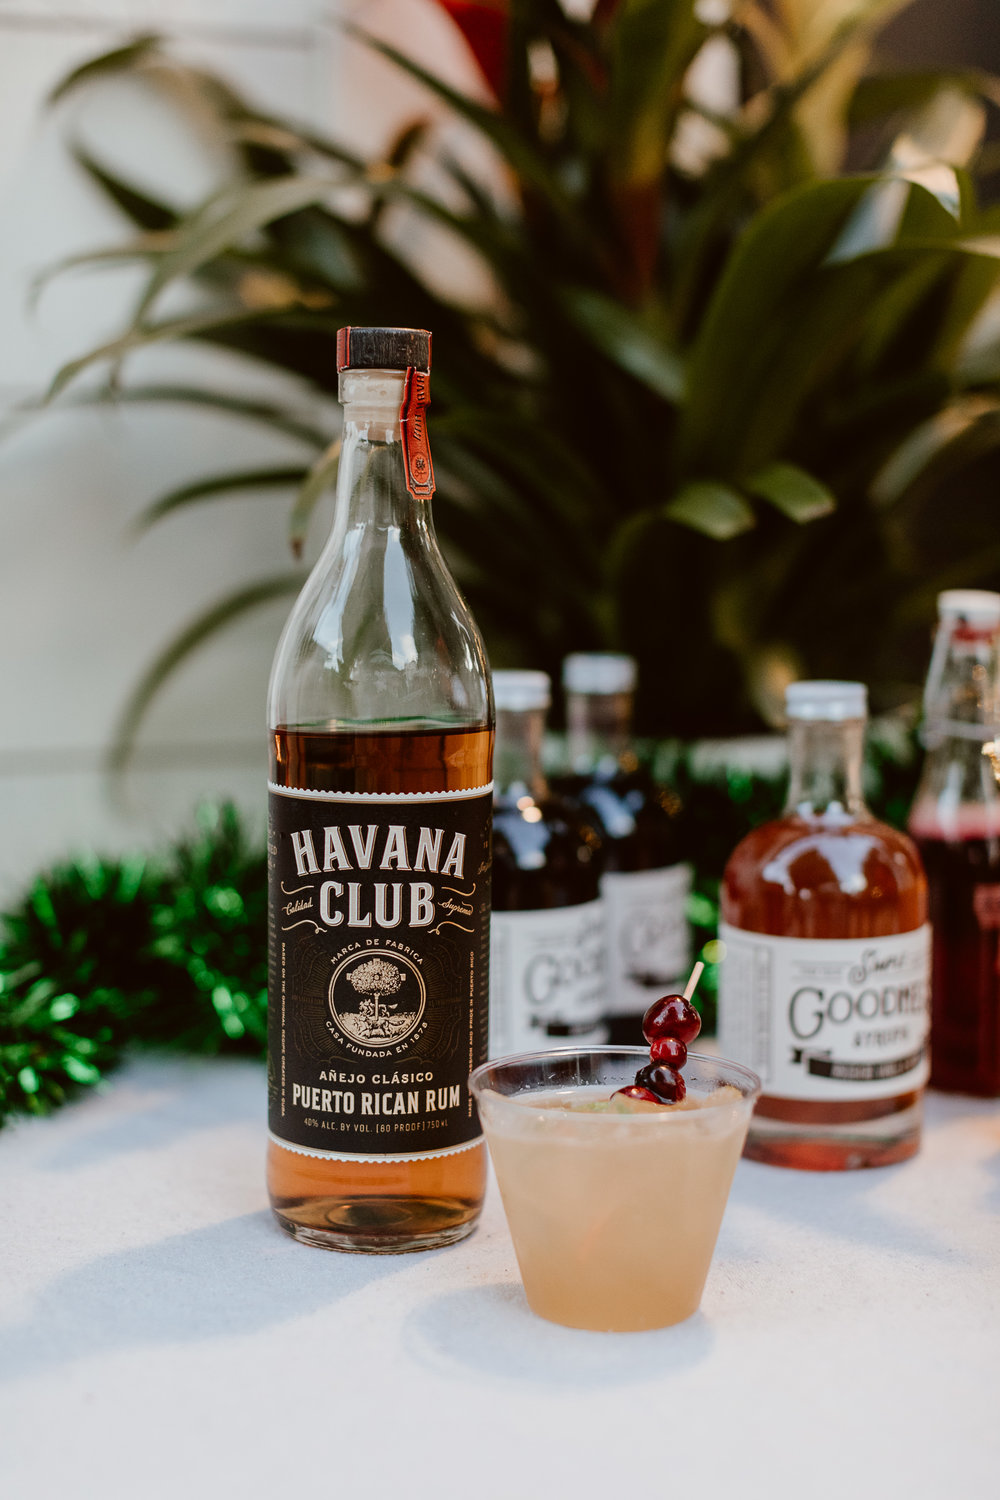 Havana Club Rum drinks at our Holiday Tiki Party | drinkingwithchickens.com